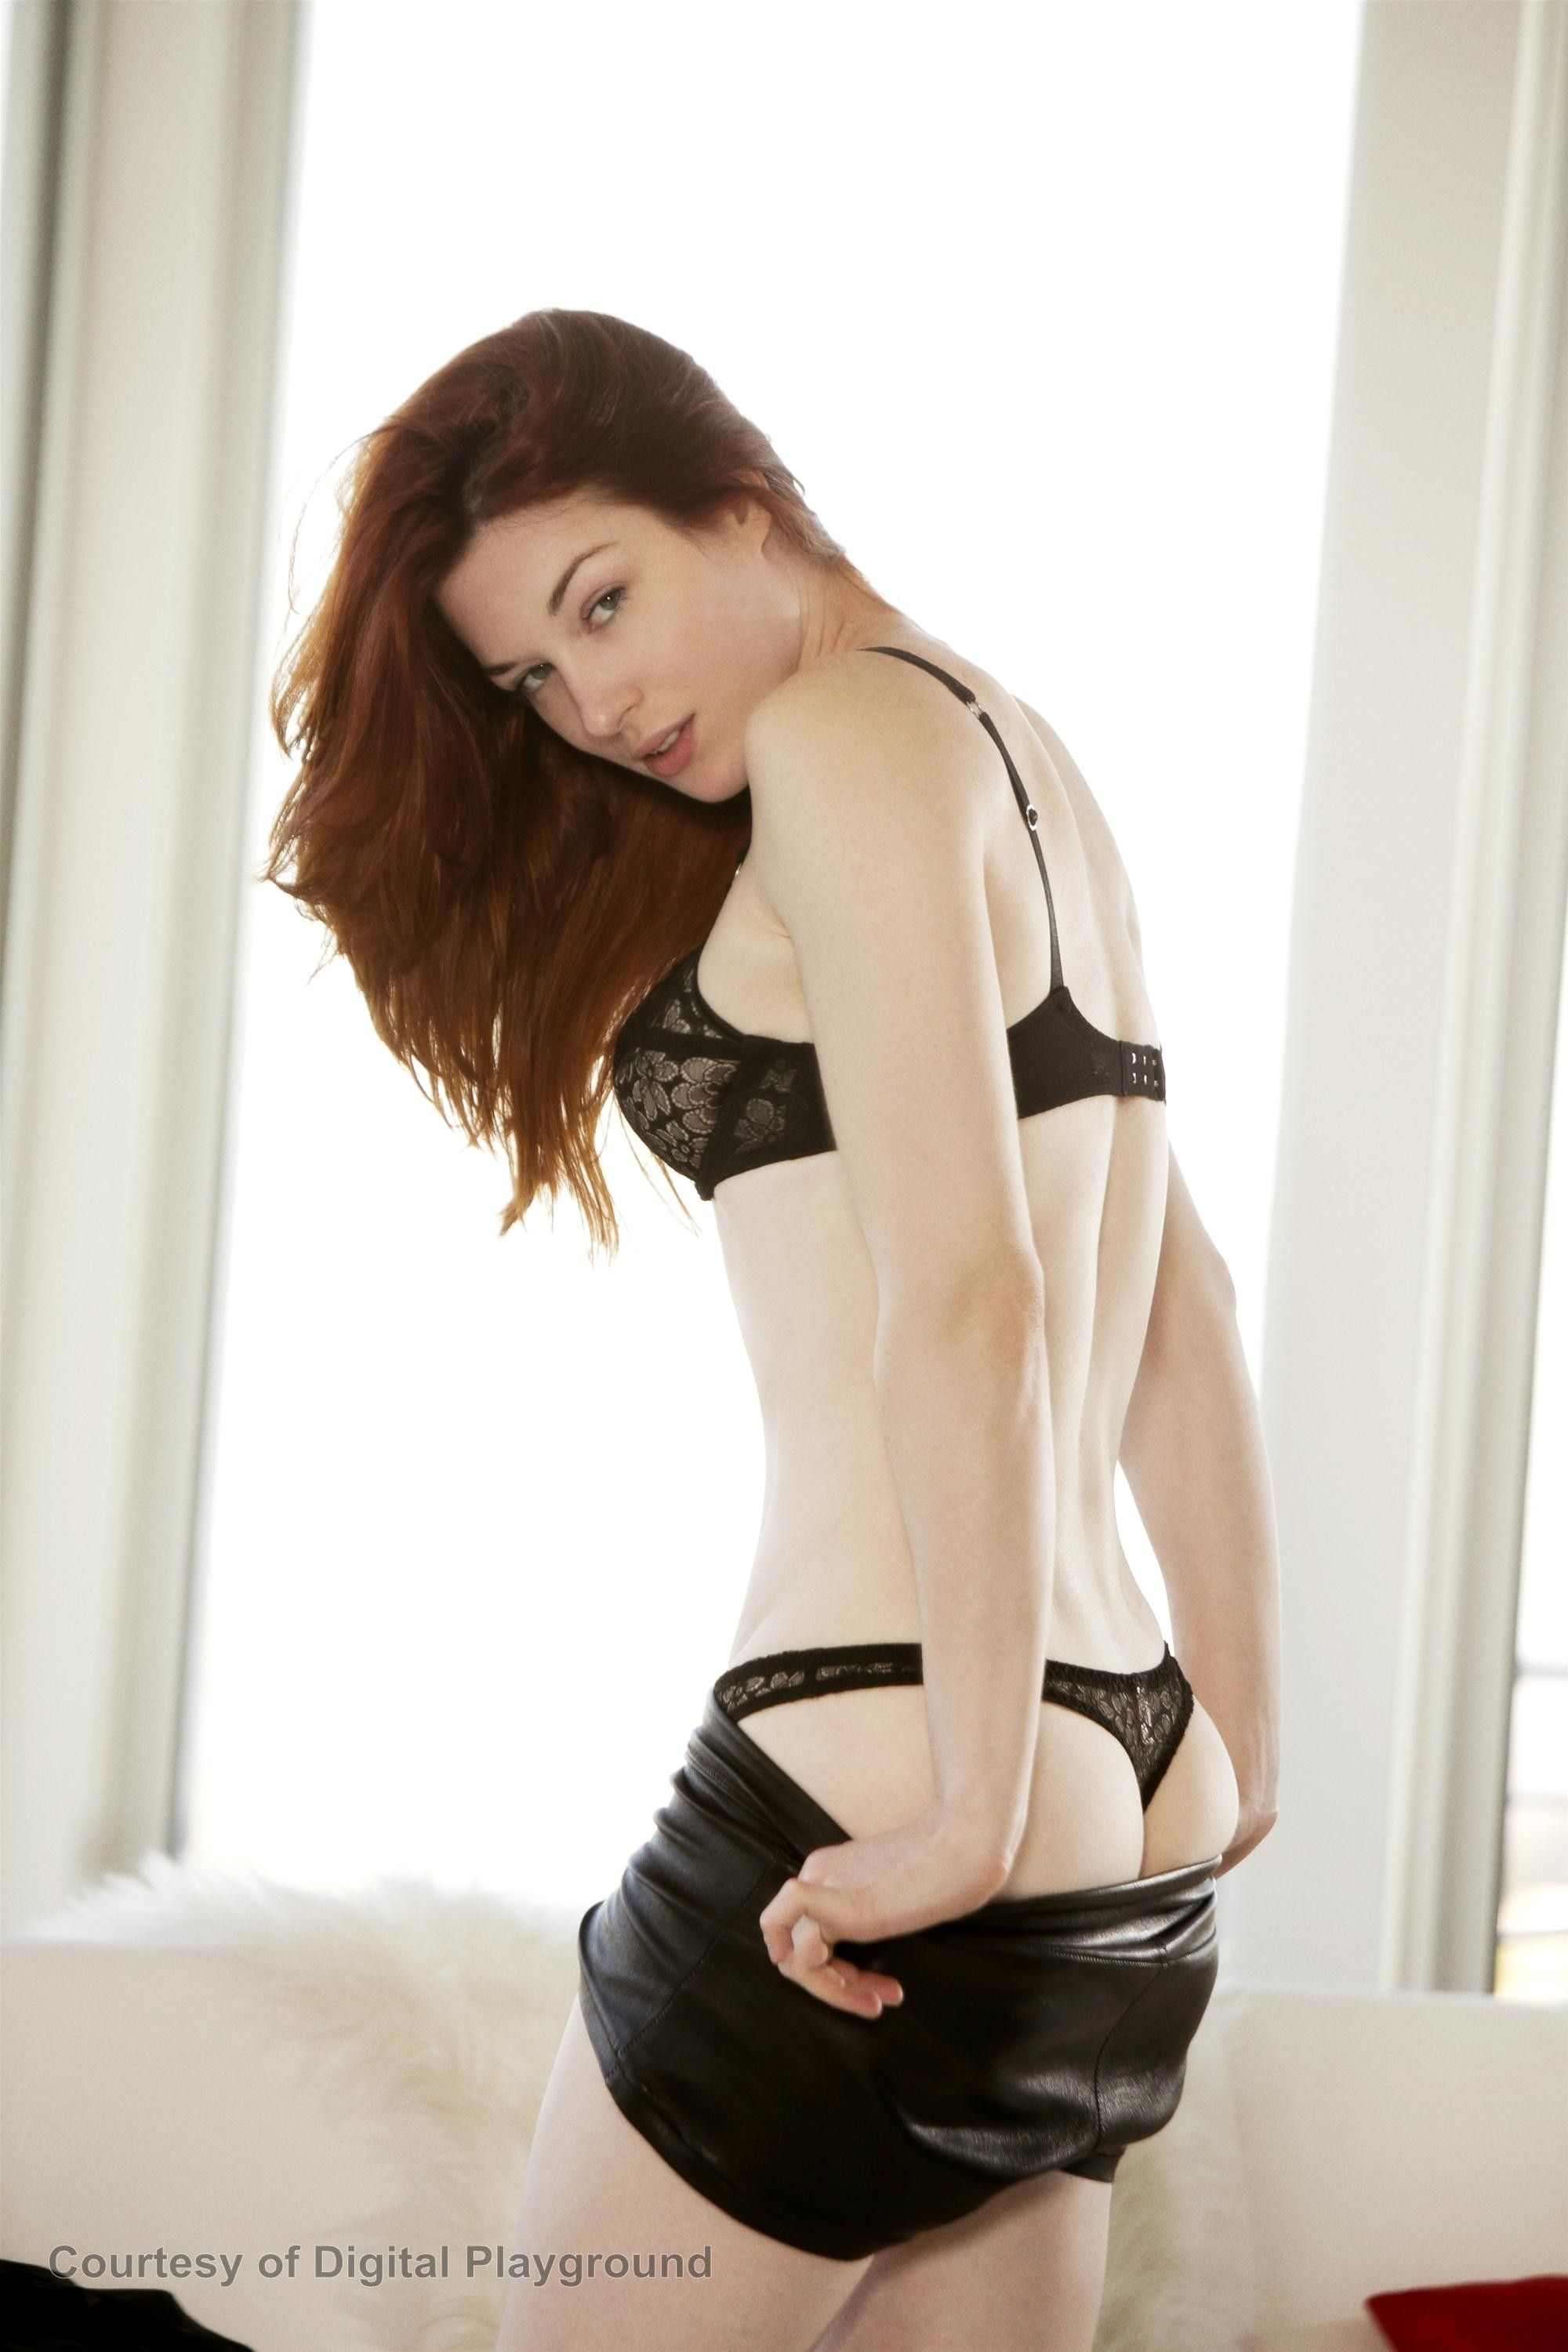 Stoya Black Lingerie Delightful pinmanugnr1 on stoya | pinterest